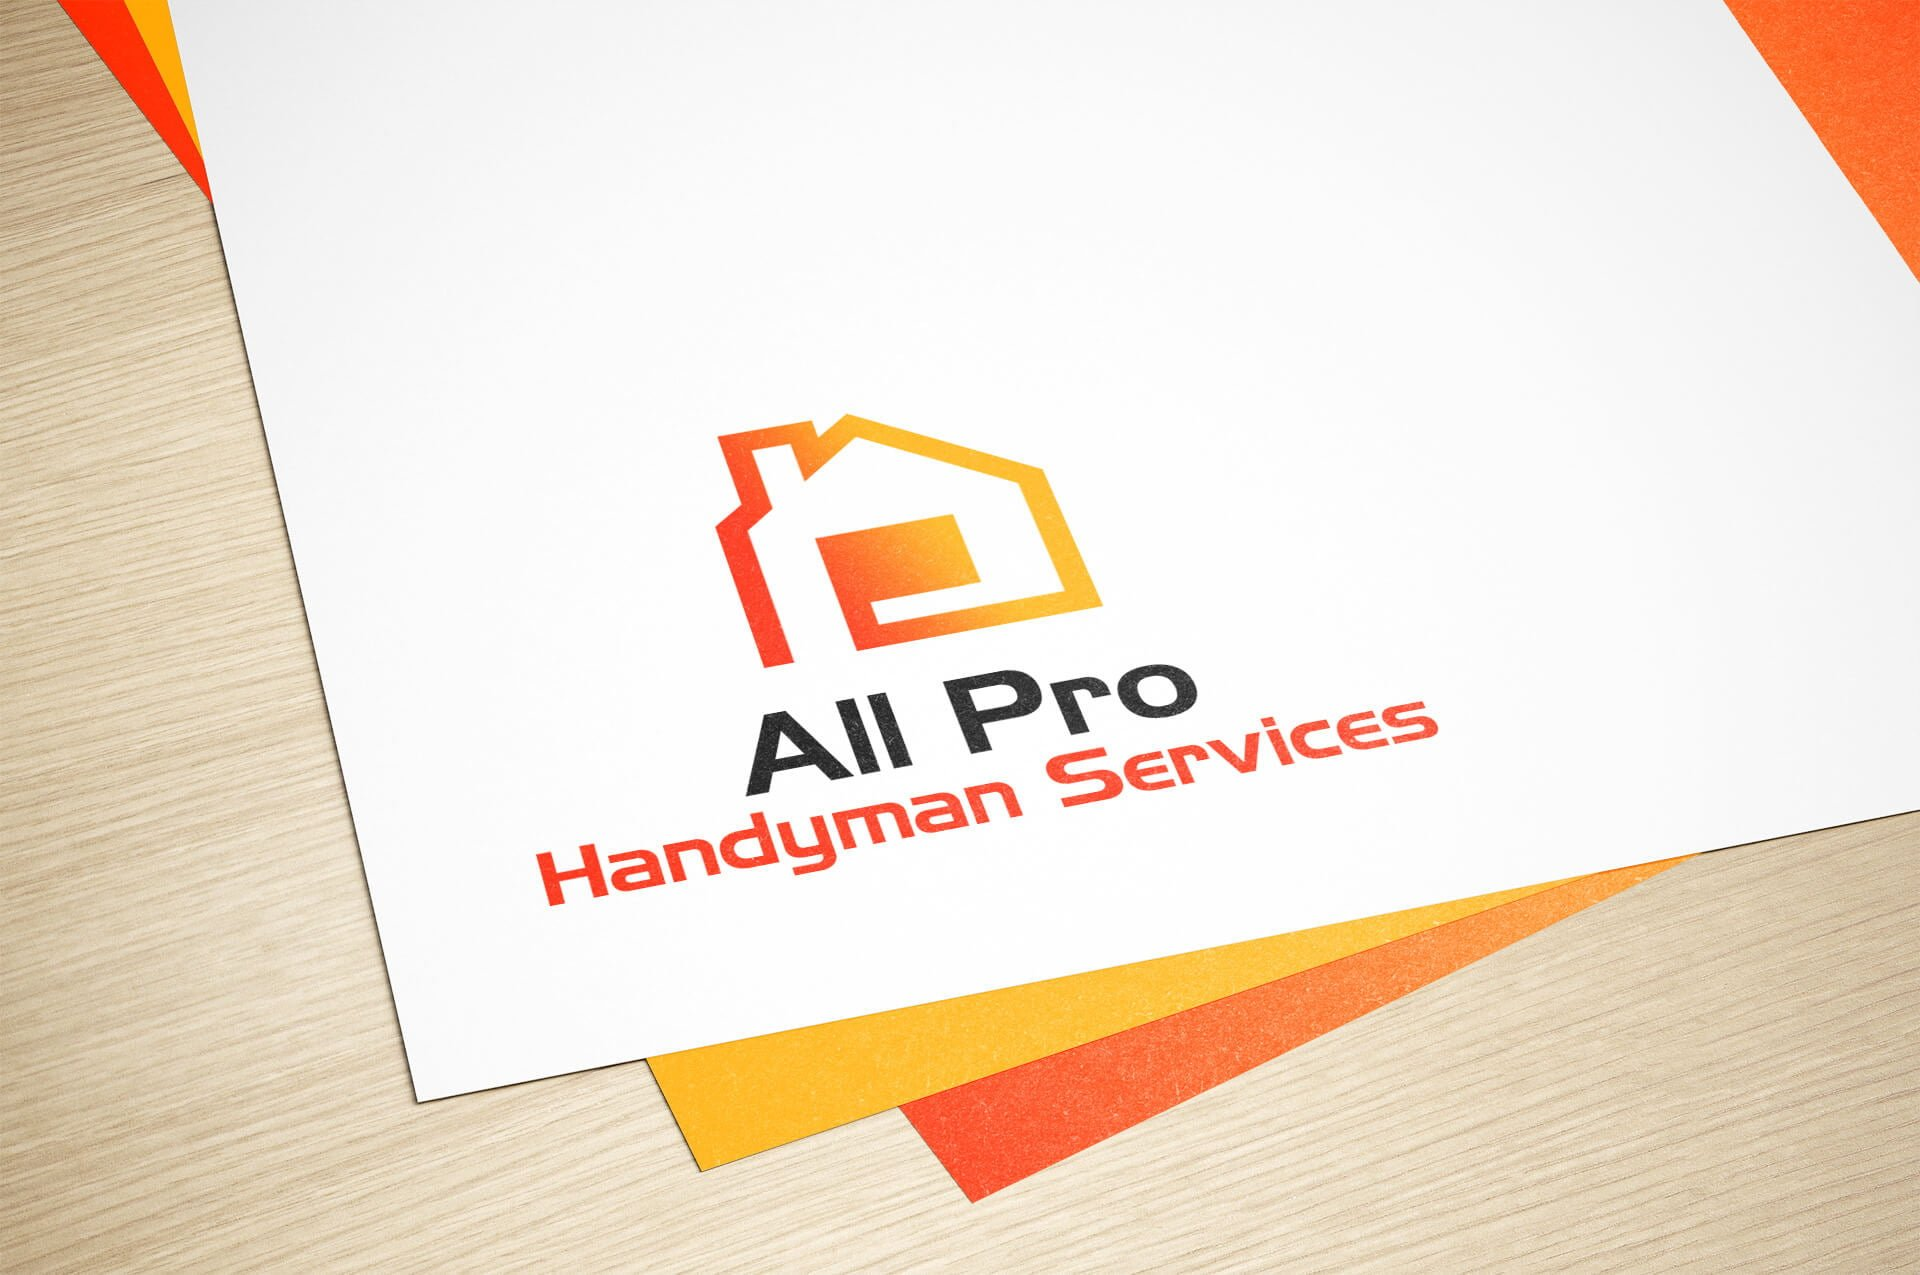 All Pro Handyman Services